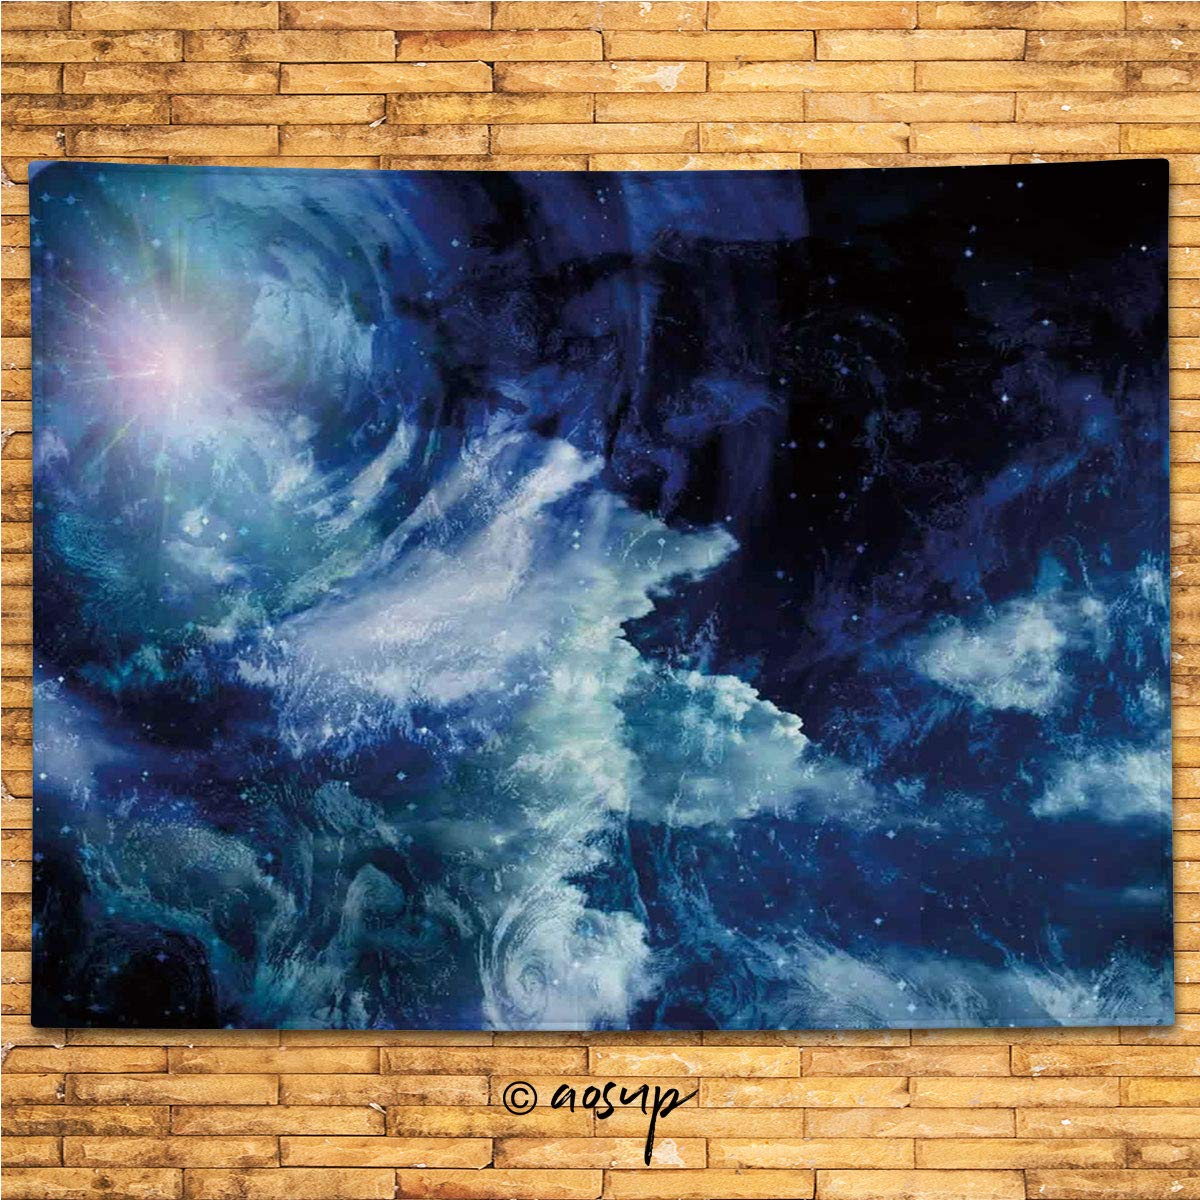 Supfeng 10148 Tapestry Space Nebula Gas Cloud On Celestial Sphere Universe Themed Design Galaxy Art Print Dark Blue Wide Wall Hanging For Bedroom Living Room Dorm 80 X 60 Buy Online In